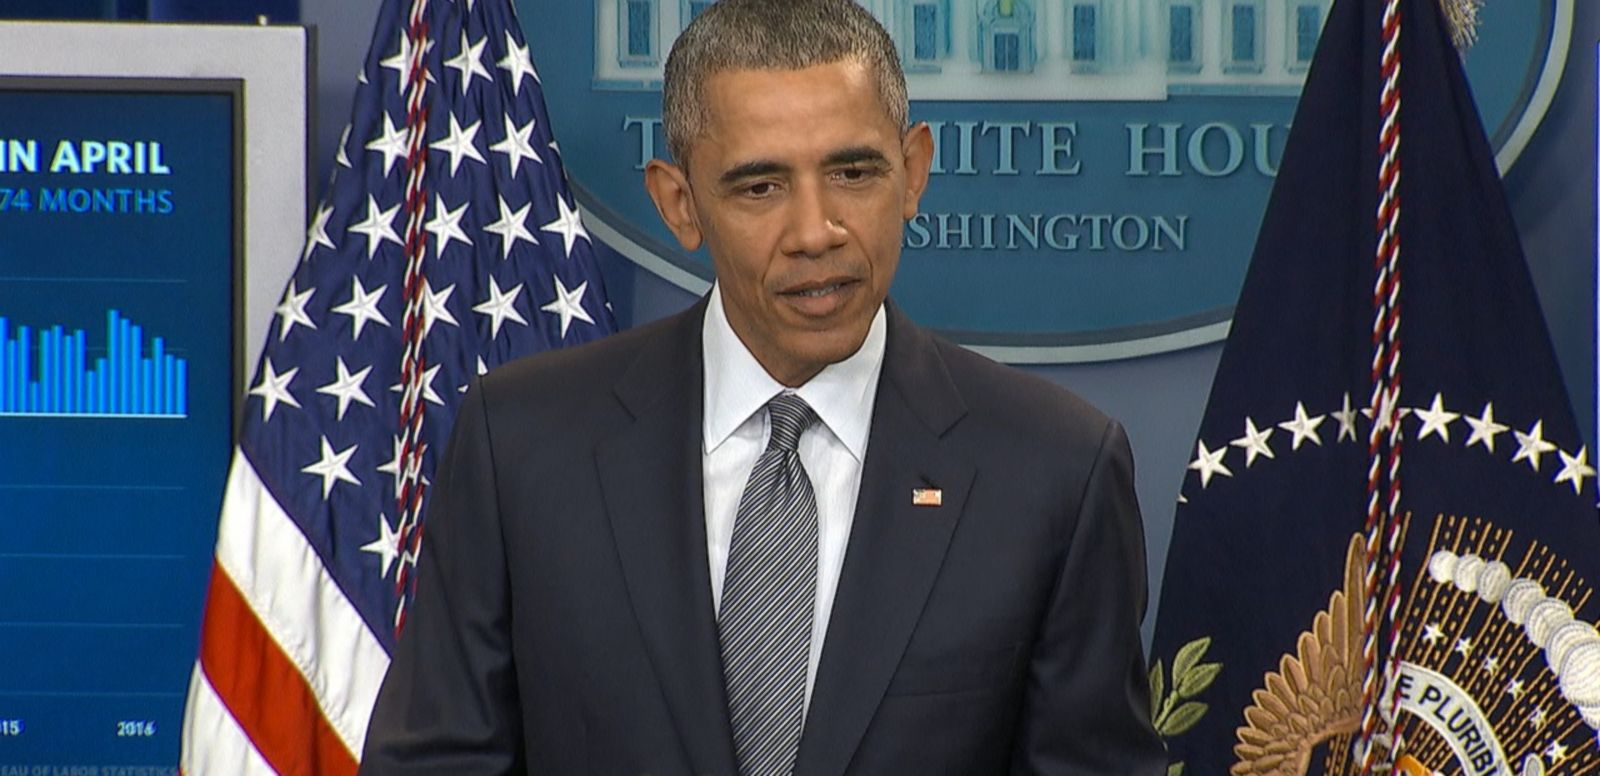 VIDEO: The president says he doesn't follow the GOP presumptive nominee's posts on Twitter.